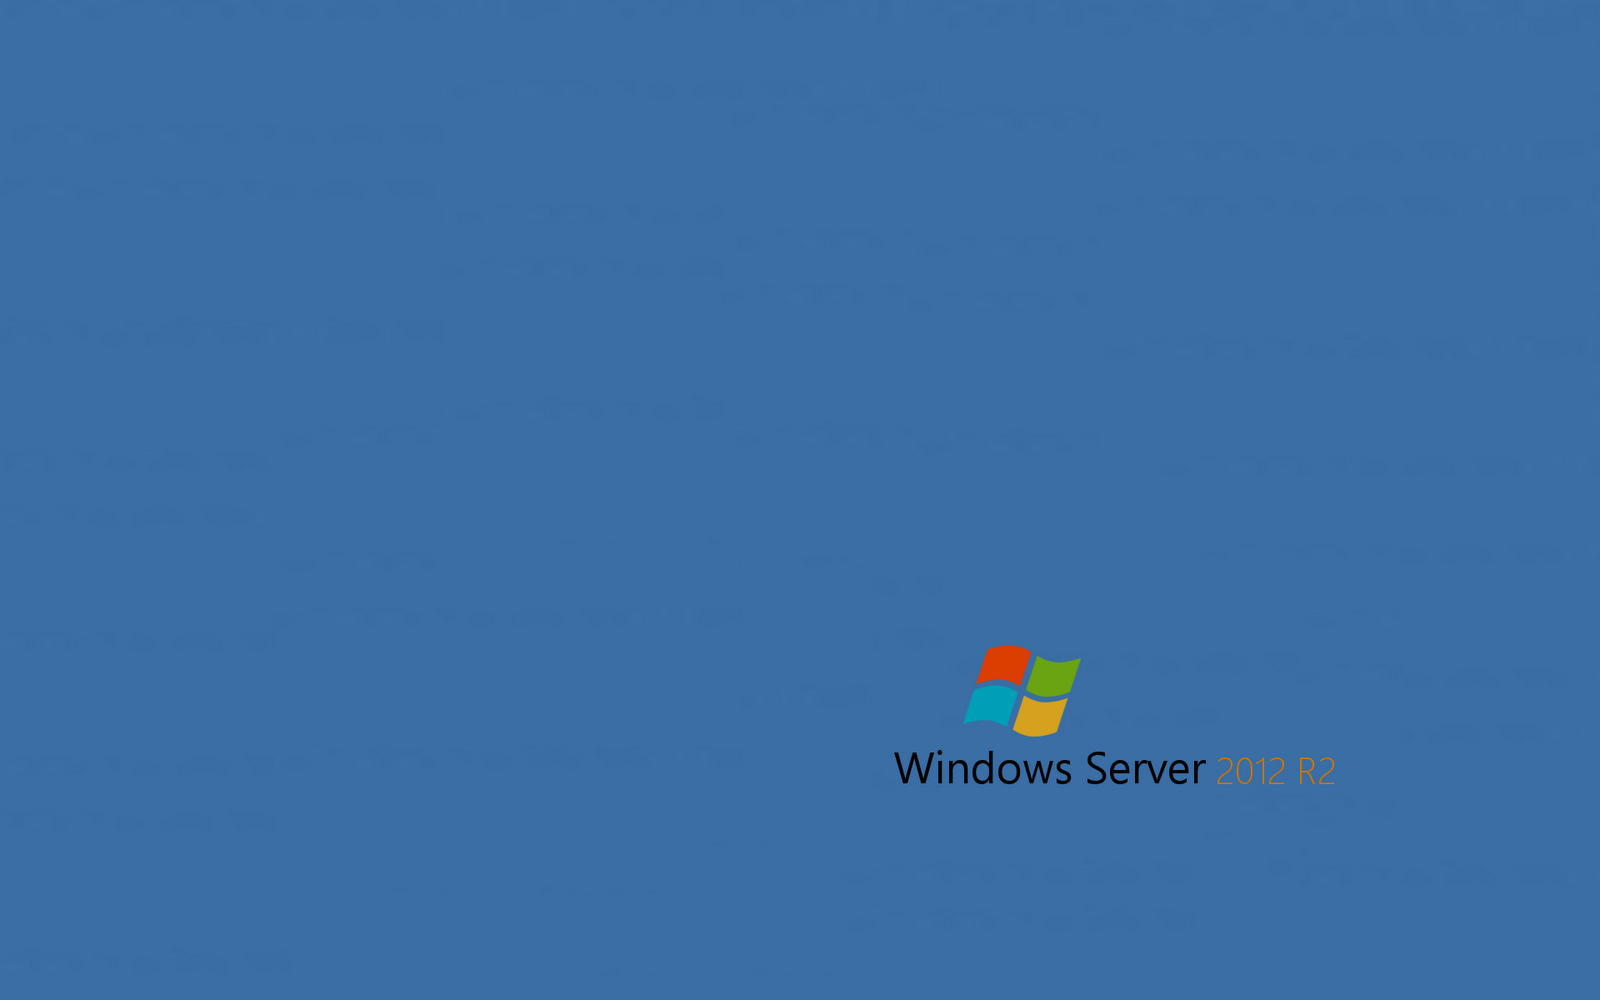 http://4.bp.blogspot.com/-dvce4PjASv8/T8e5EAf6CZI/AAAAAAAAAVc/myaFWMLsSEY/s1600/classic_blue___windows_server_2012_r2_wallpaper_by_goldsparexe-d4xv1r5.png